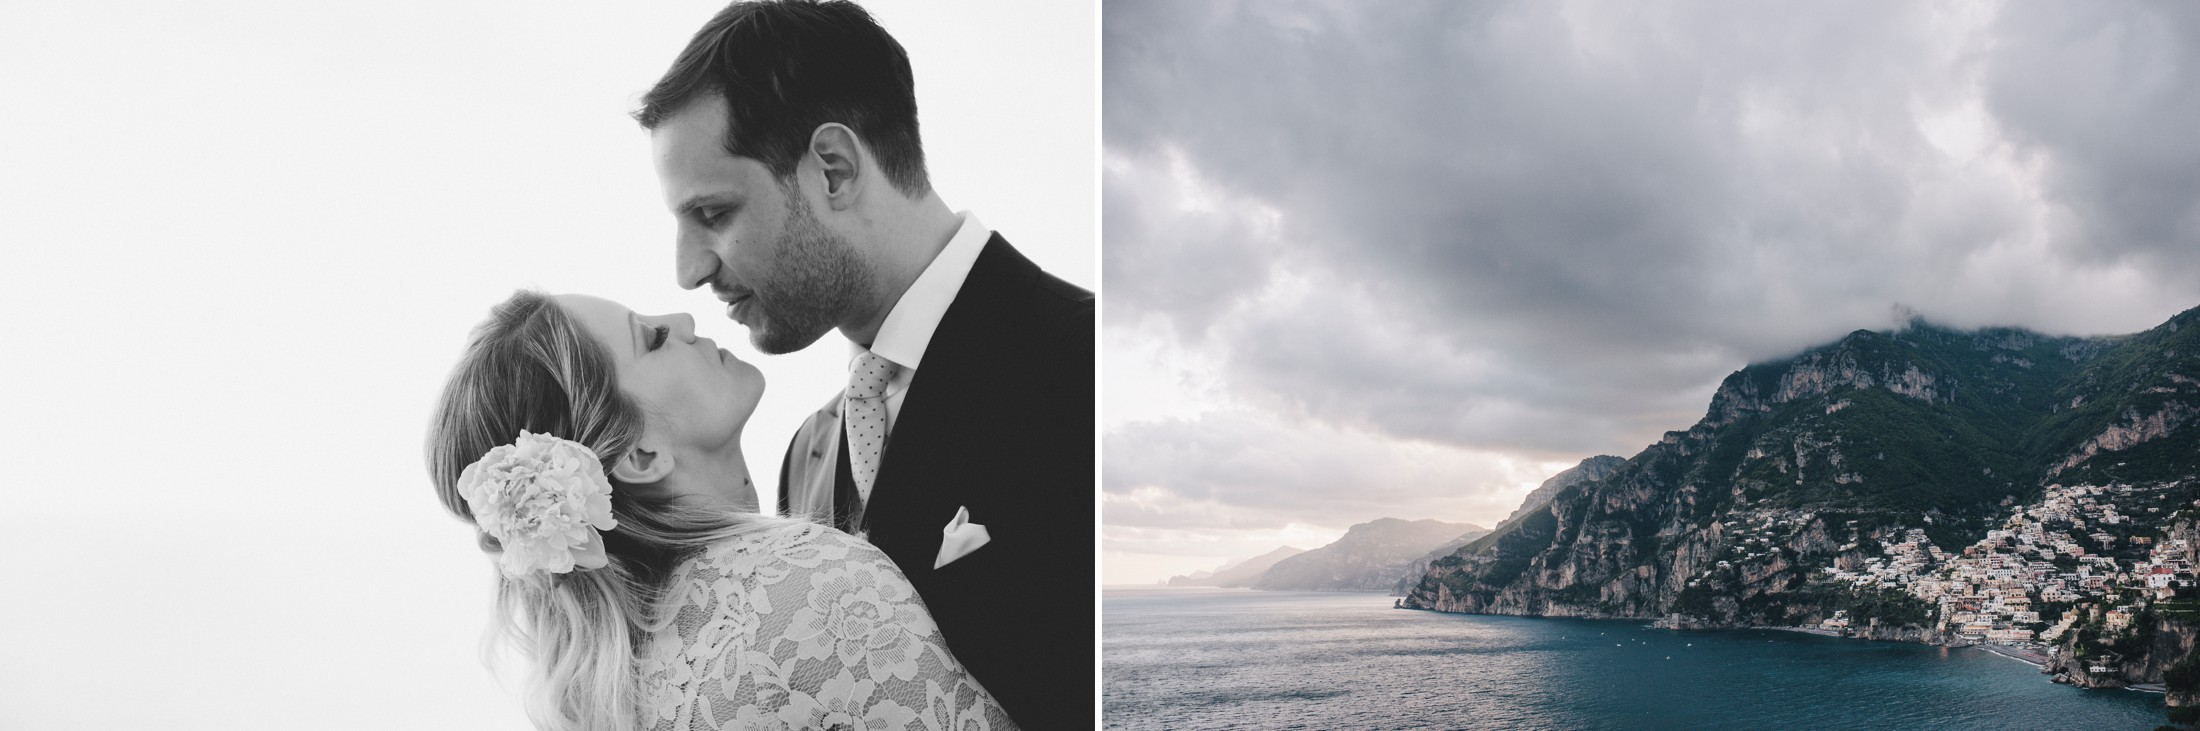 collage the bride and the groom kissing in black and white and the sea